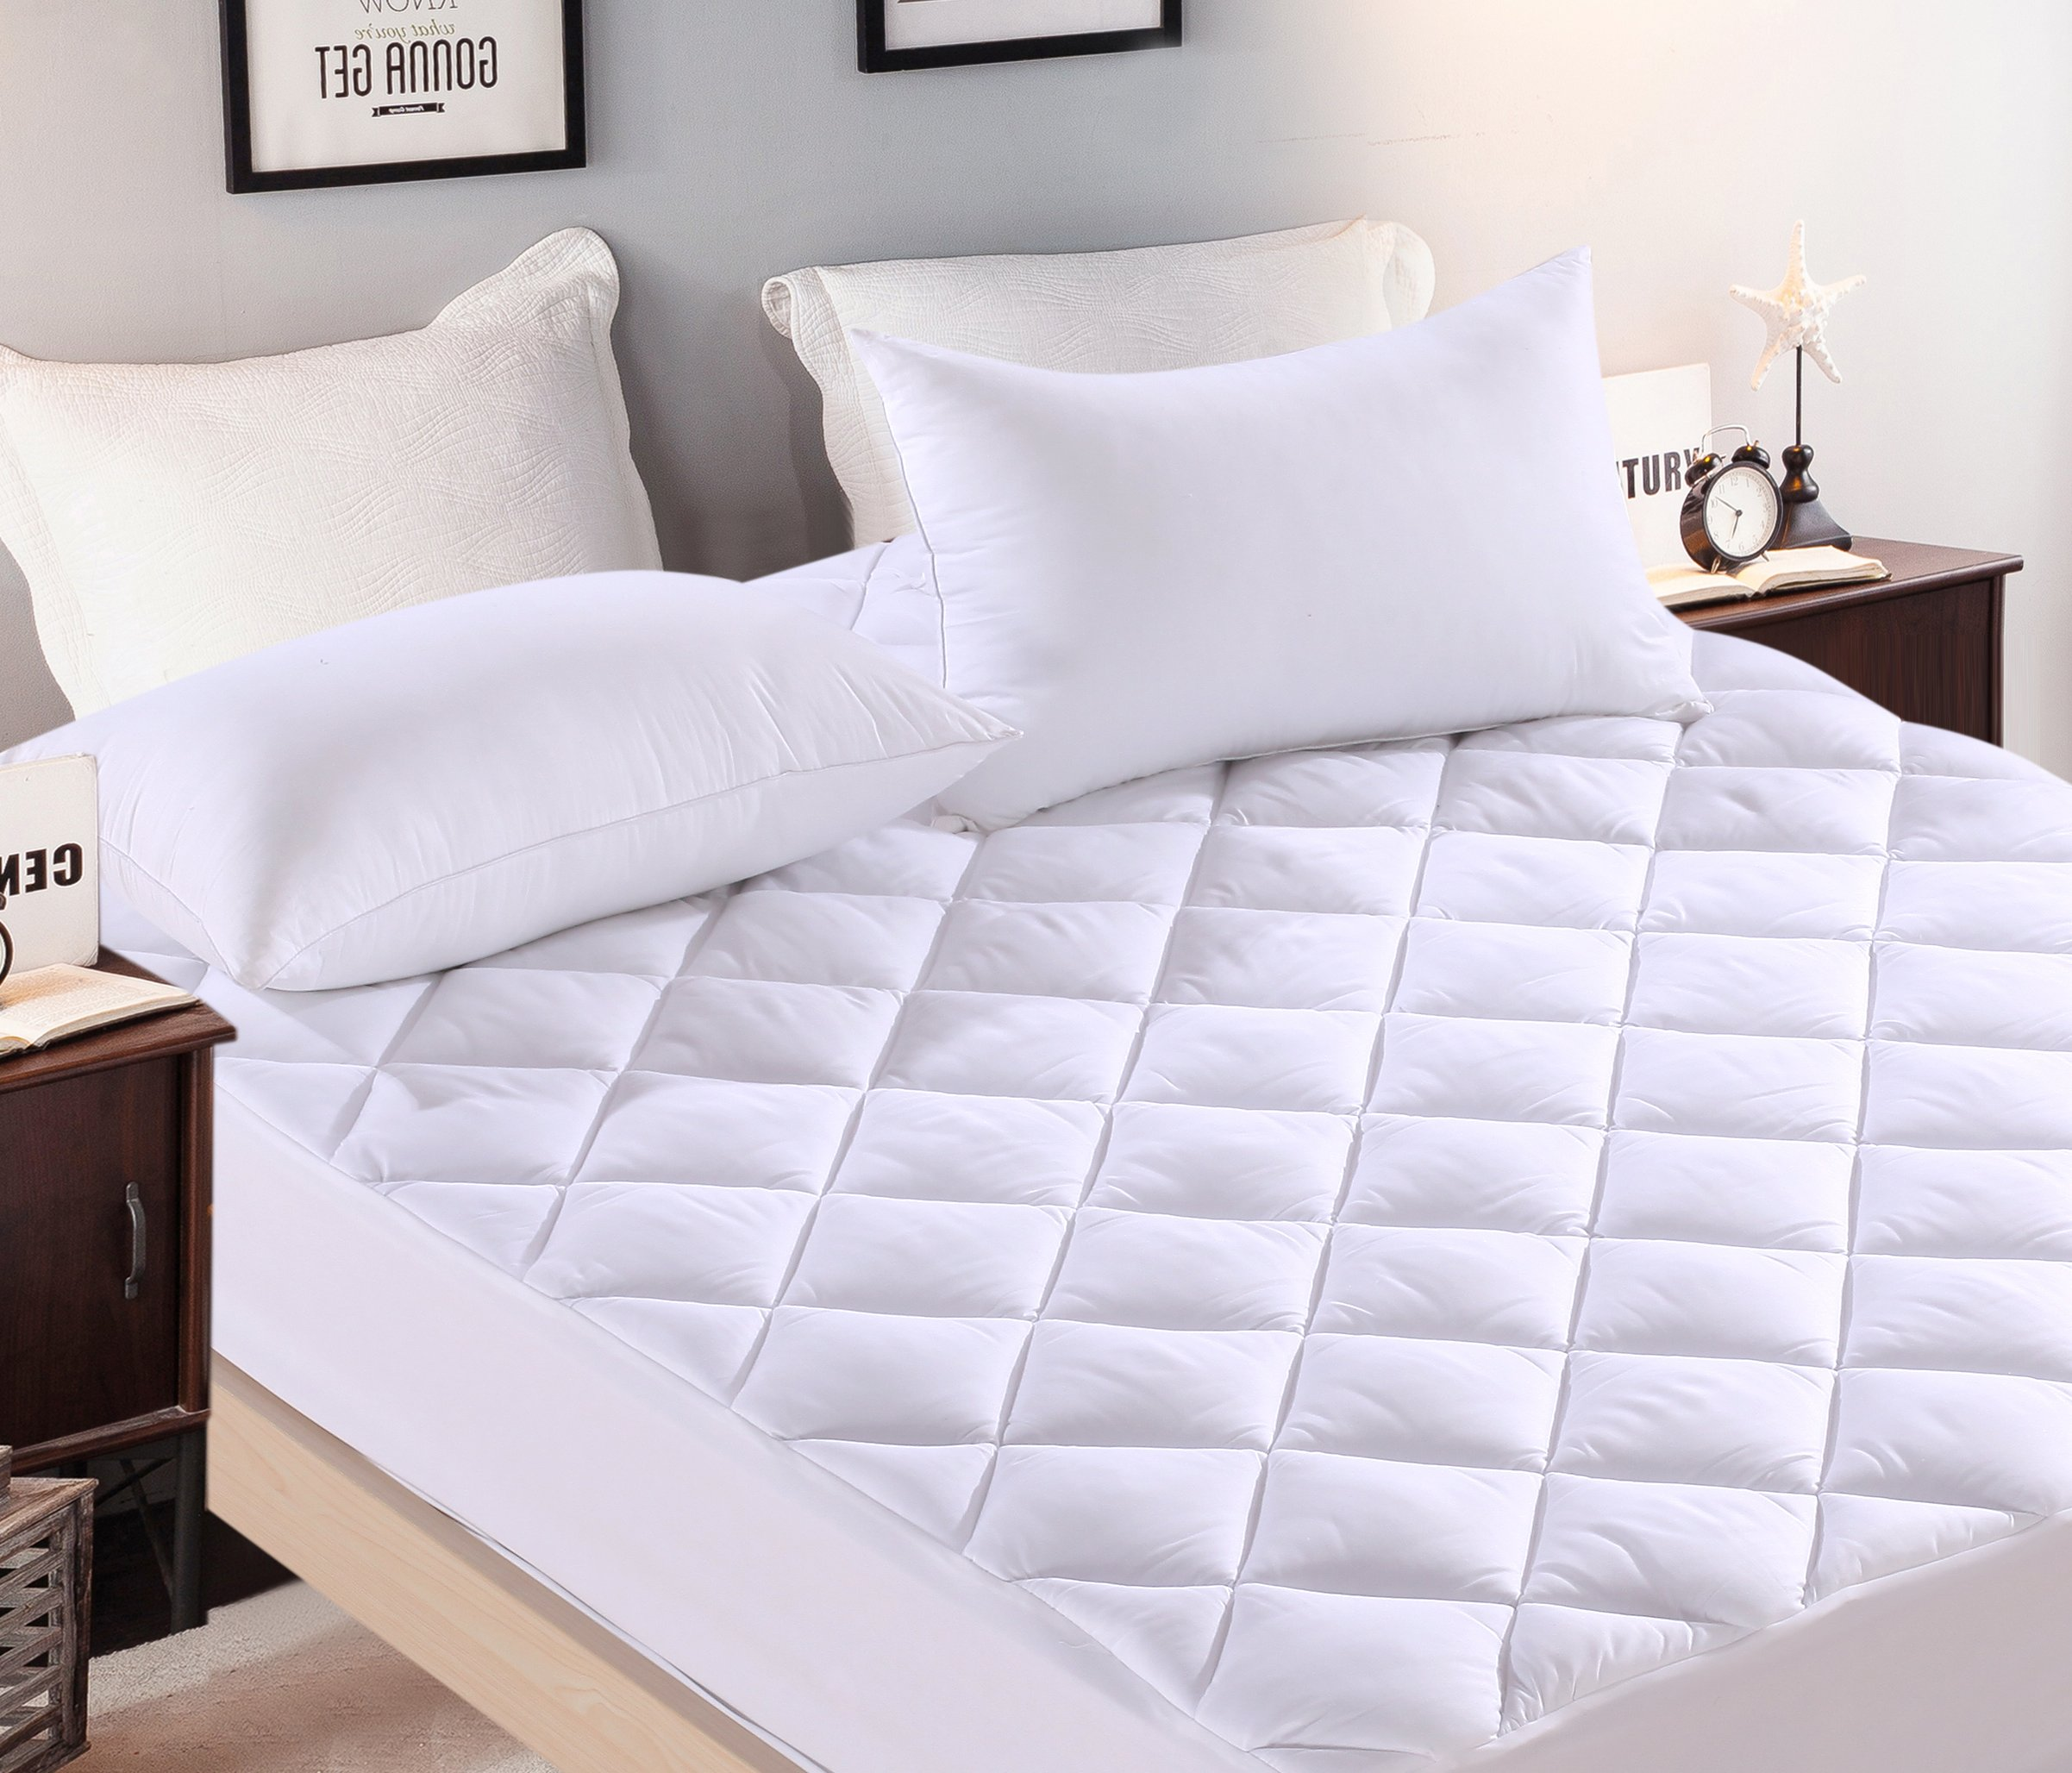 Everest Premium Plus Mattress Pad Hypoallergenic Quilted